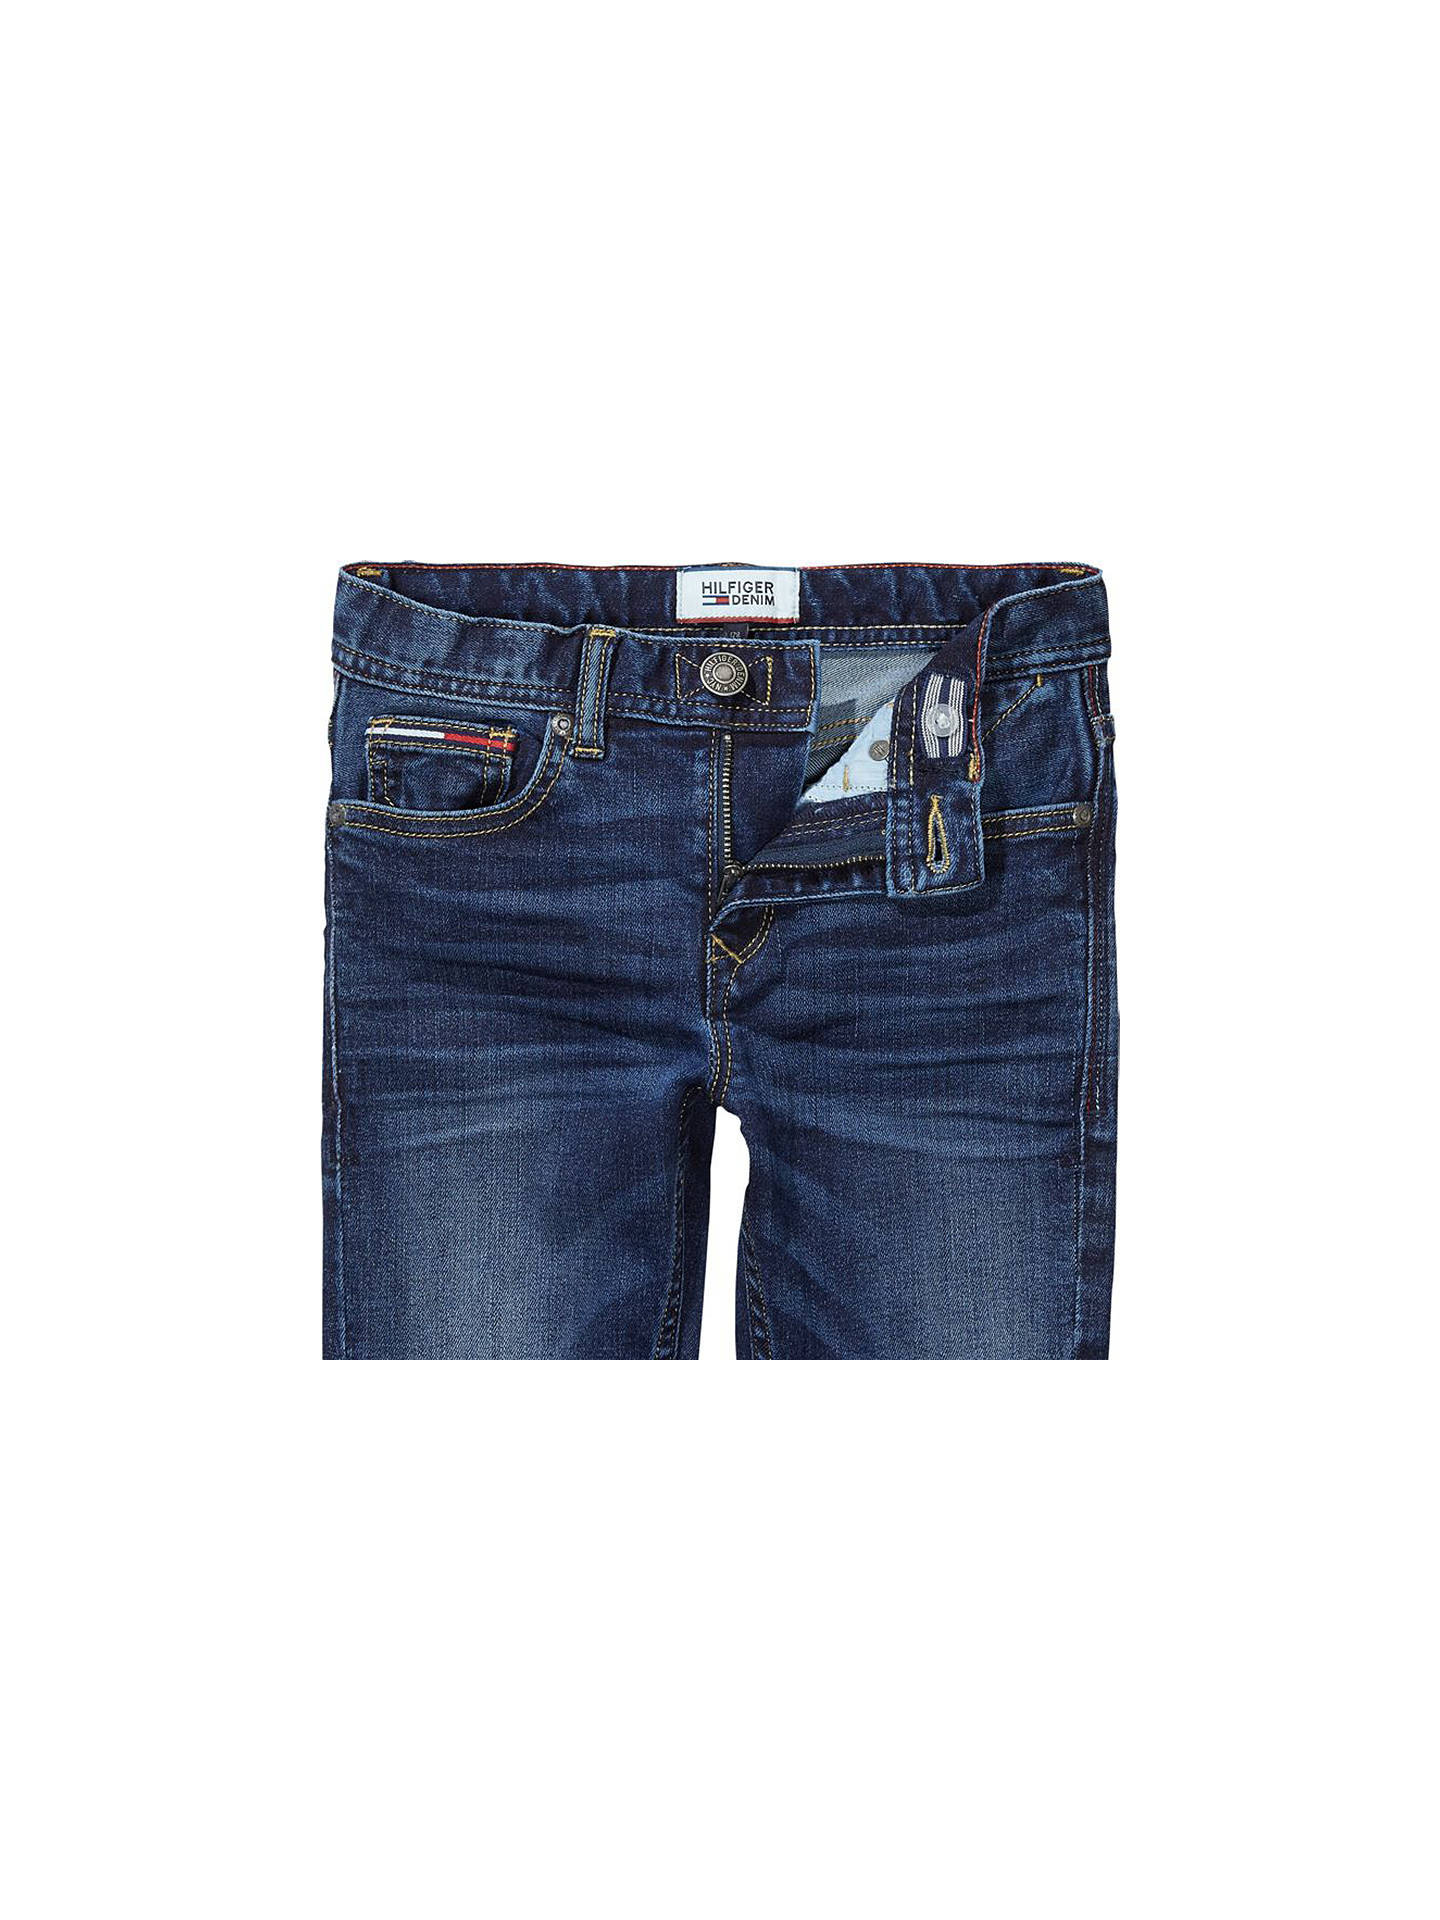 91ac55f1 ... Buy Tommy Hilfiger Boys' Scanton Slim Fit Jeans, Indigo, 2 years Online  at